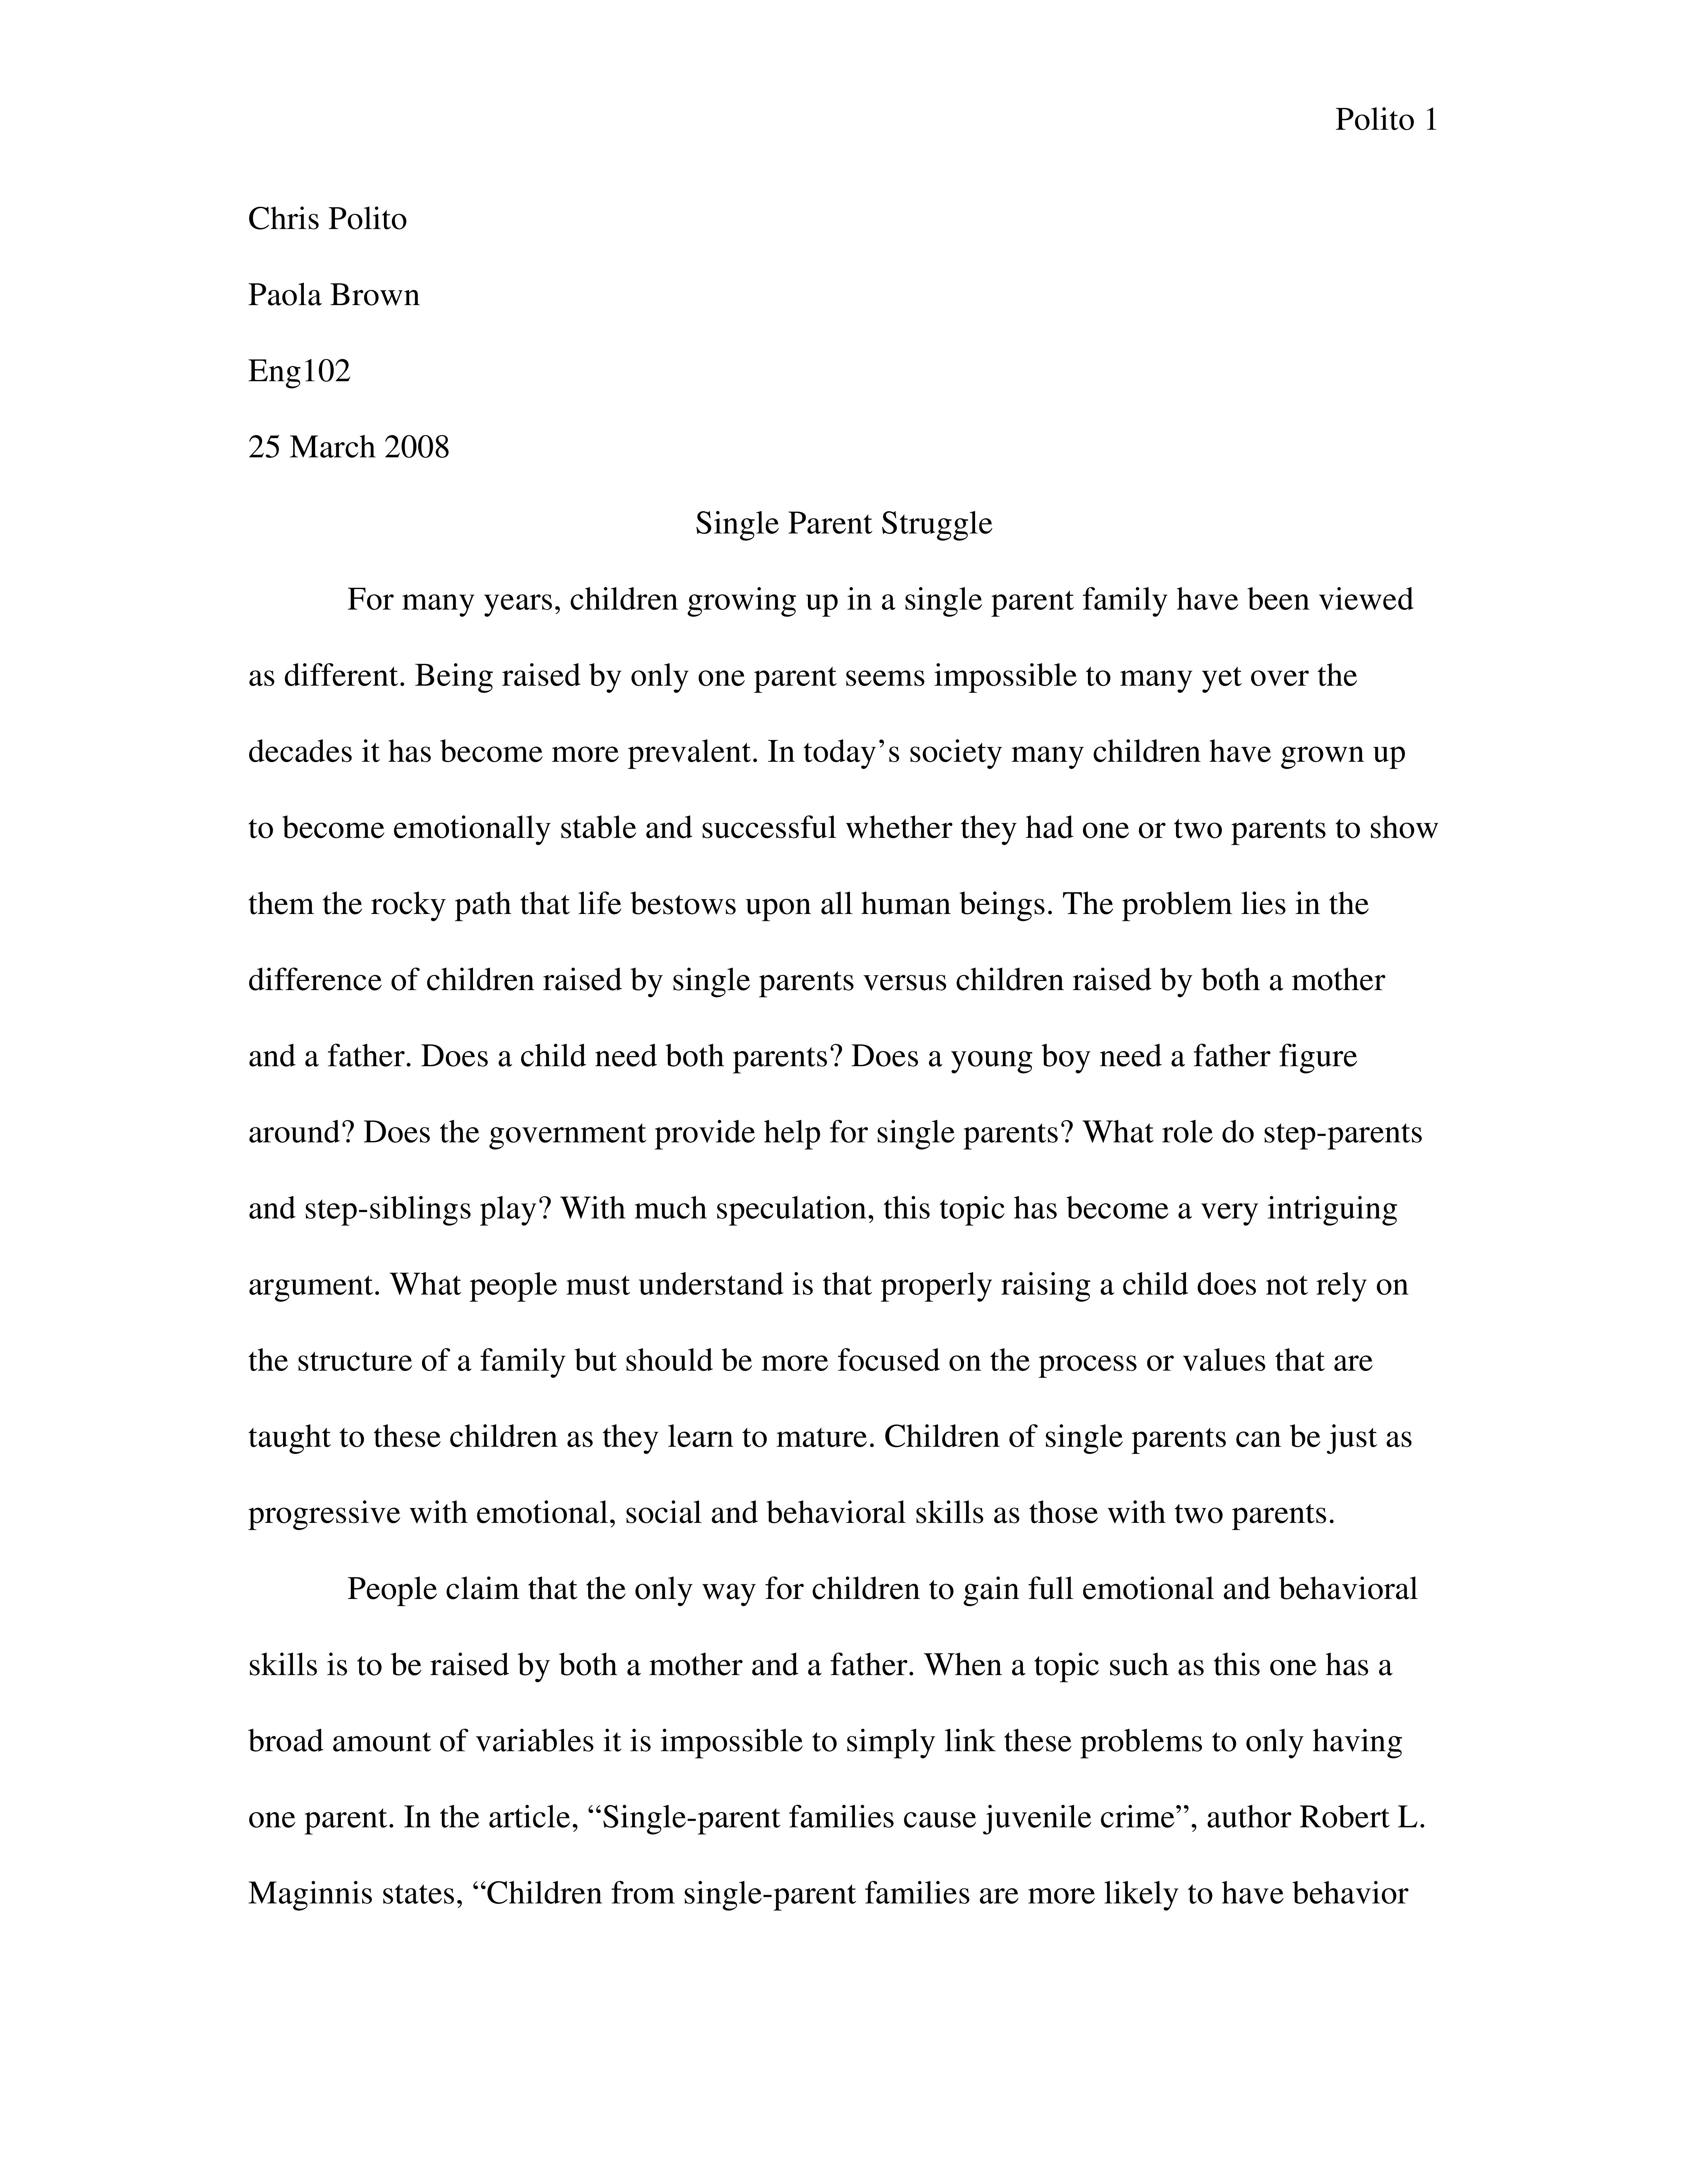 essay on wuthering heights what is an expository essay foil essay  what is an expository essay what is an expository essay location voiture espagne what is an foil essay wuthering heights